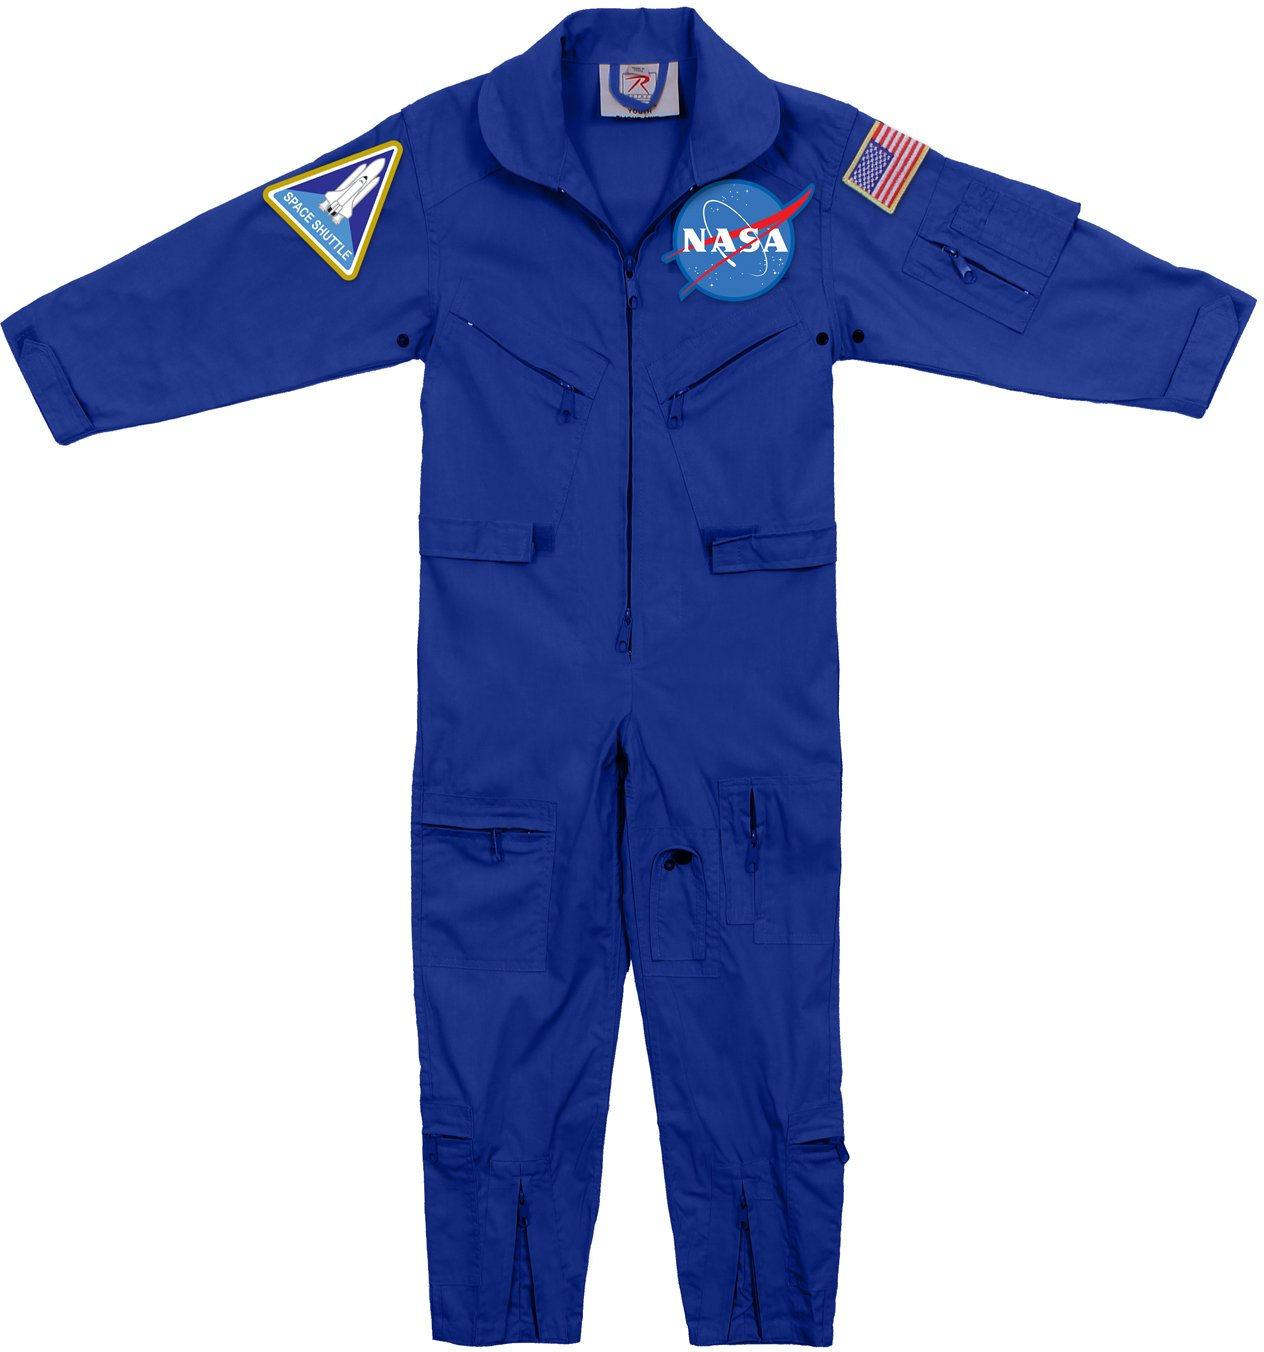 Blue - Kids NASA Flight Coveralls With Official NASA Patch